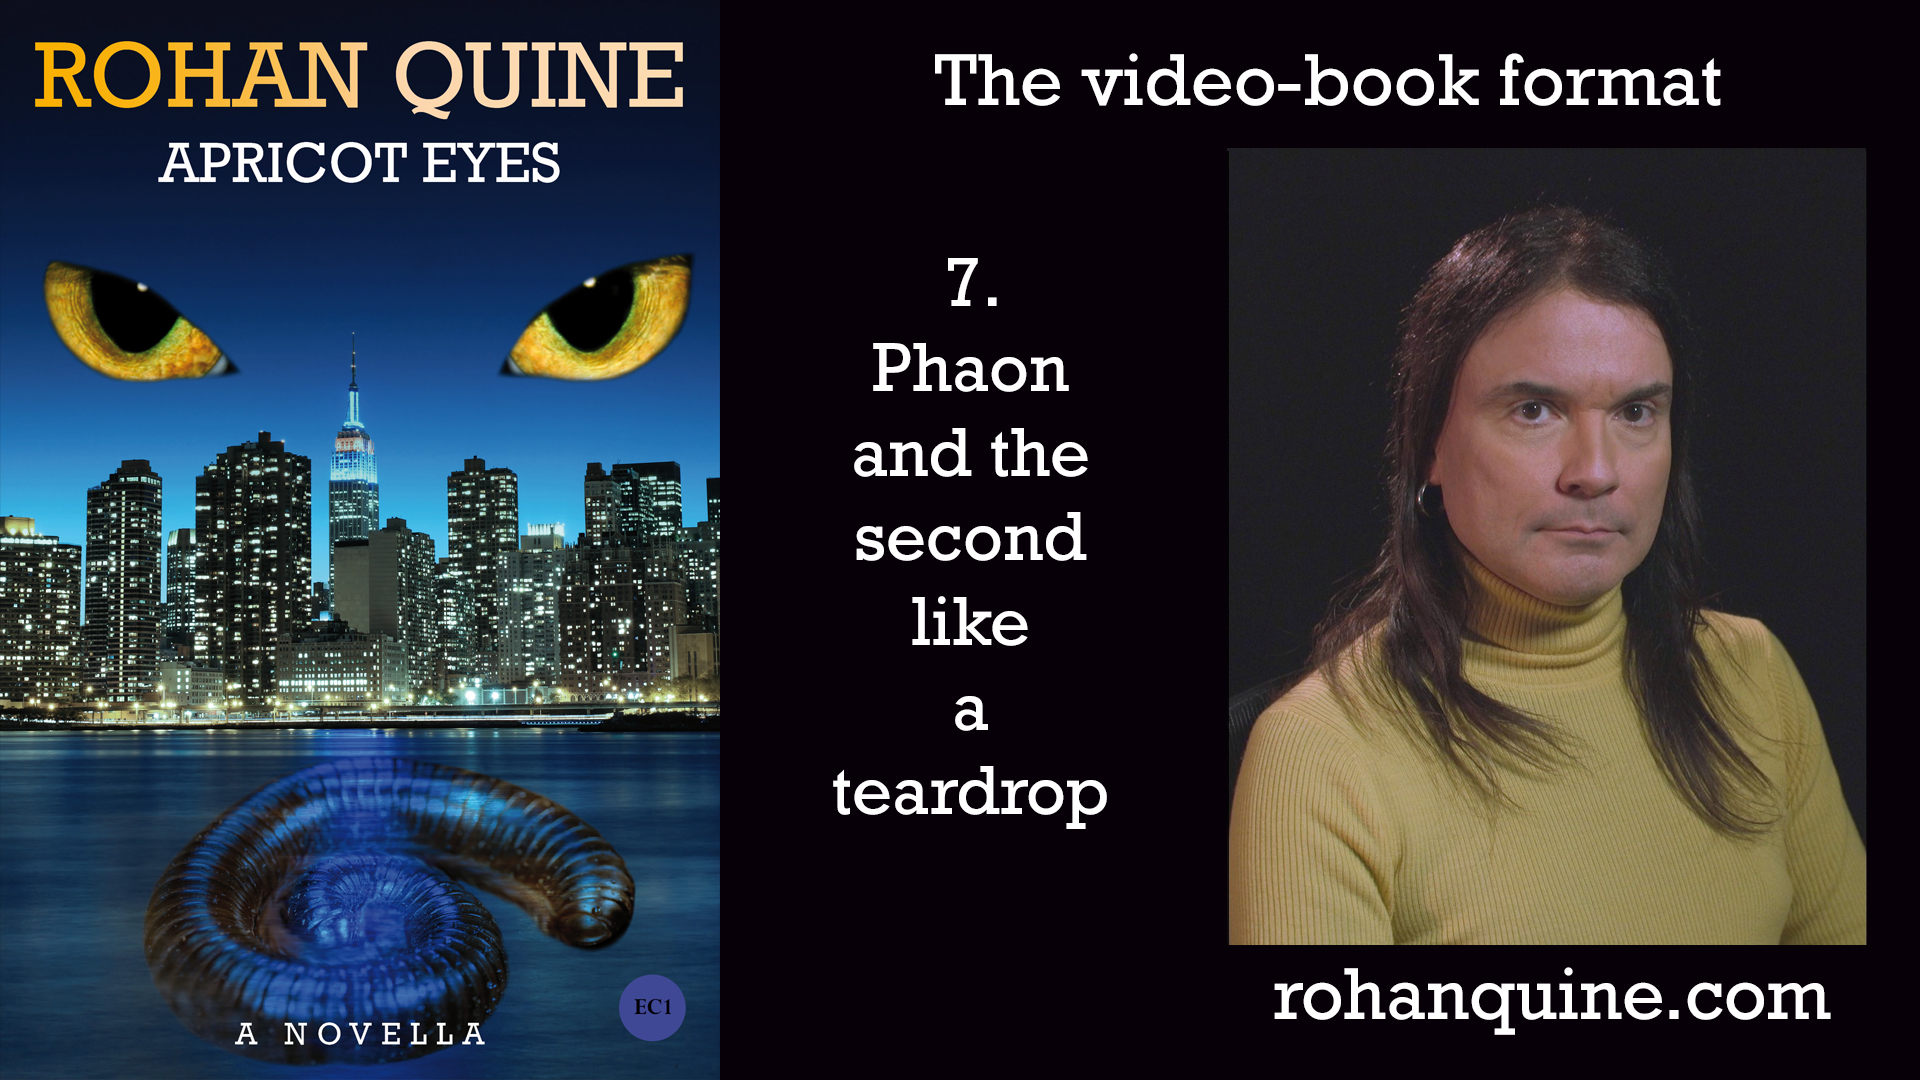 APRICOT EYES by Rohan Quine - video-book format - chapter 7